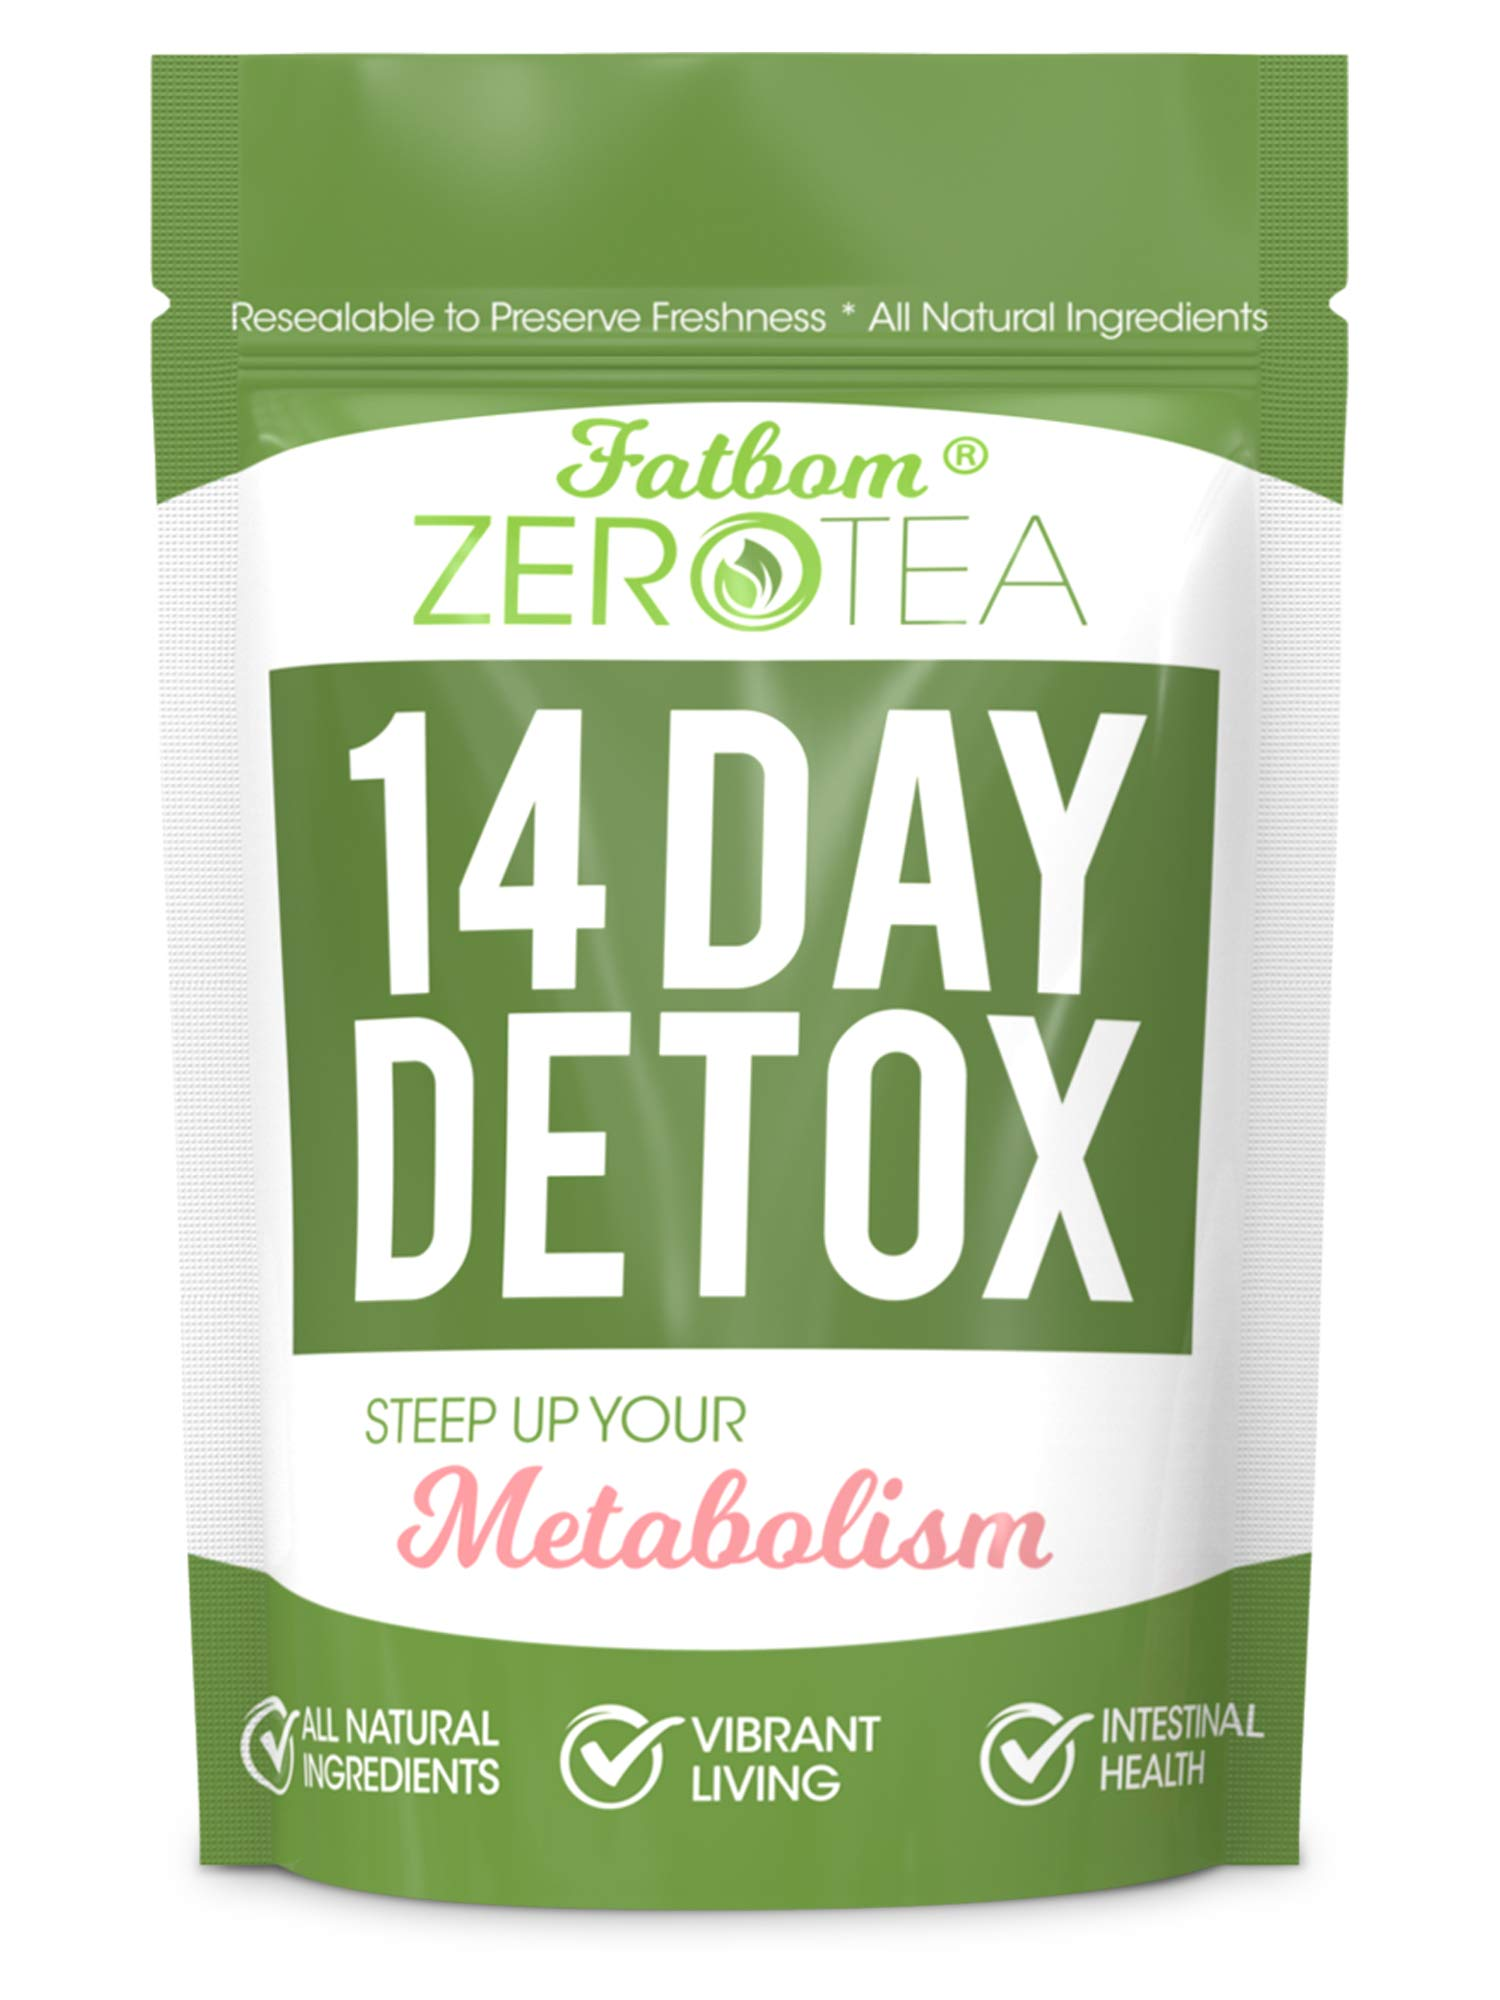 Zero Tea 14 Day Detox Tea, Weight Loss Tea, Teatox Herbal Tea for Cleanse by FATBOM